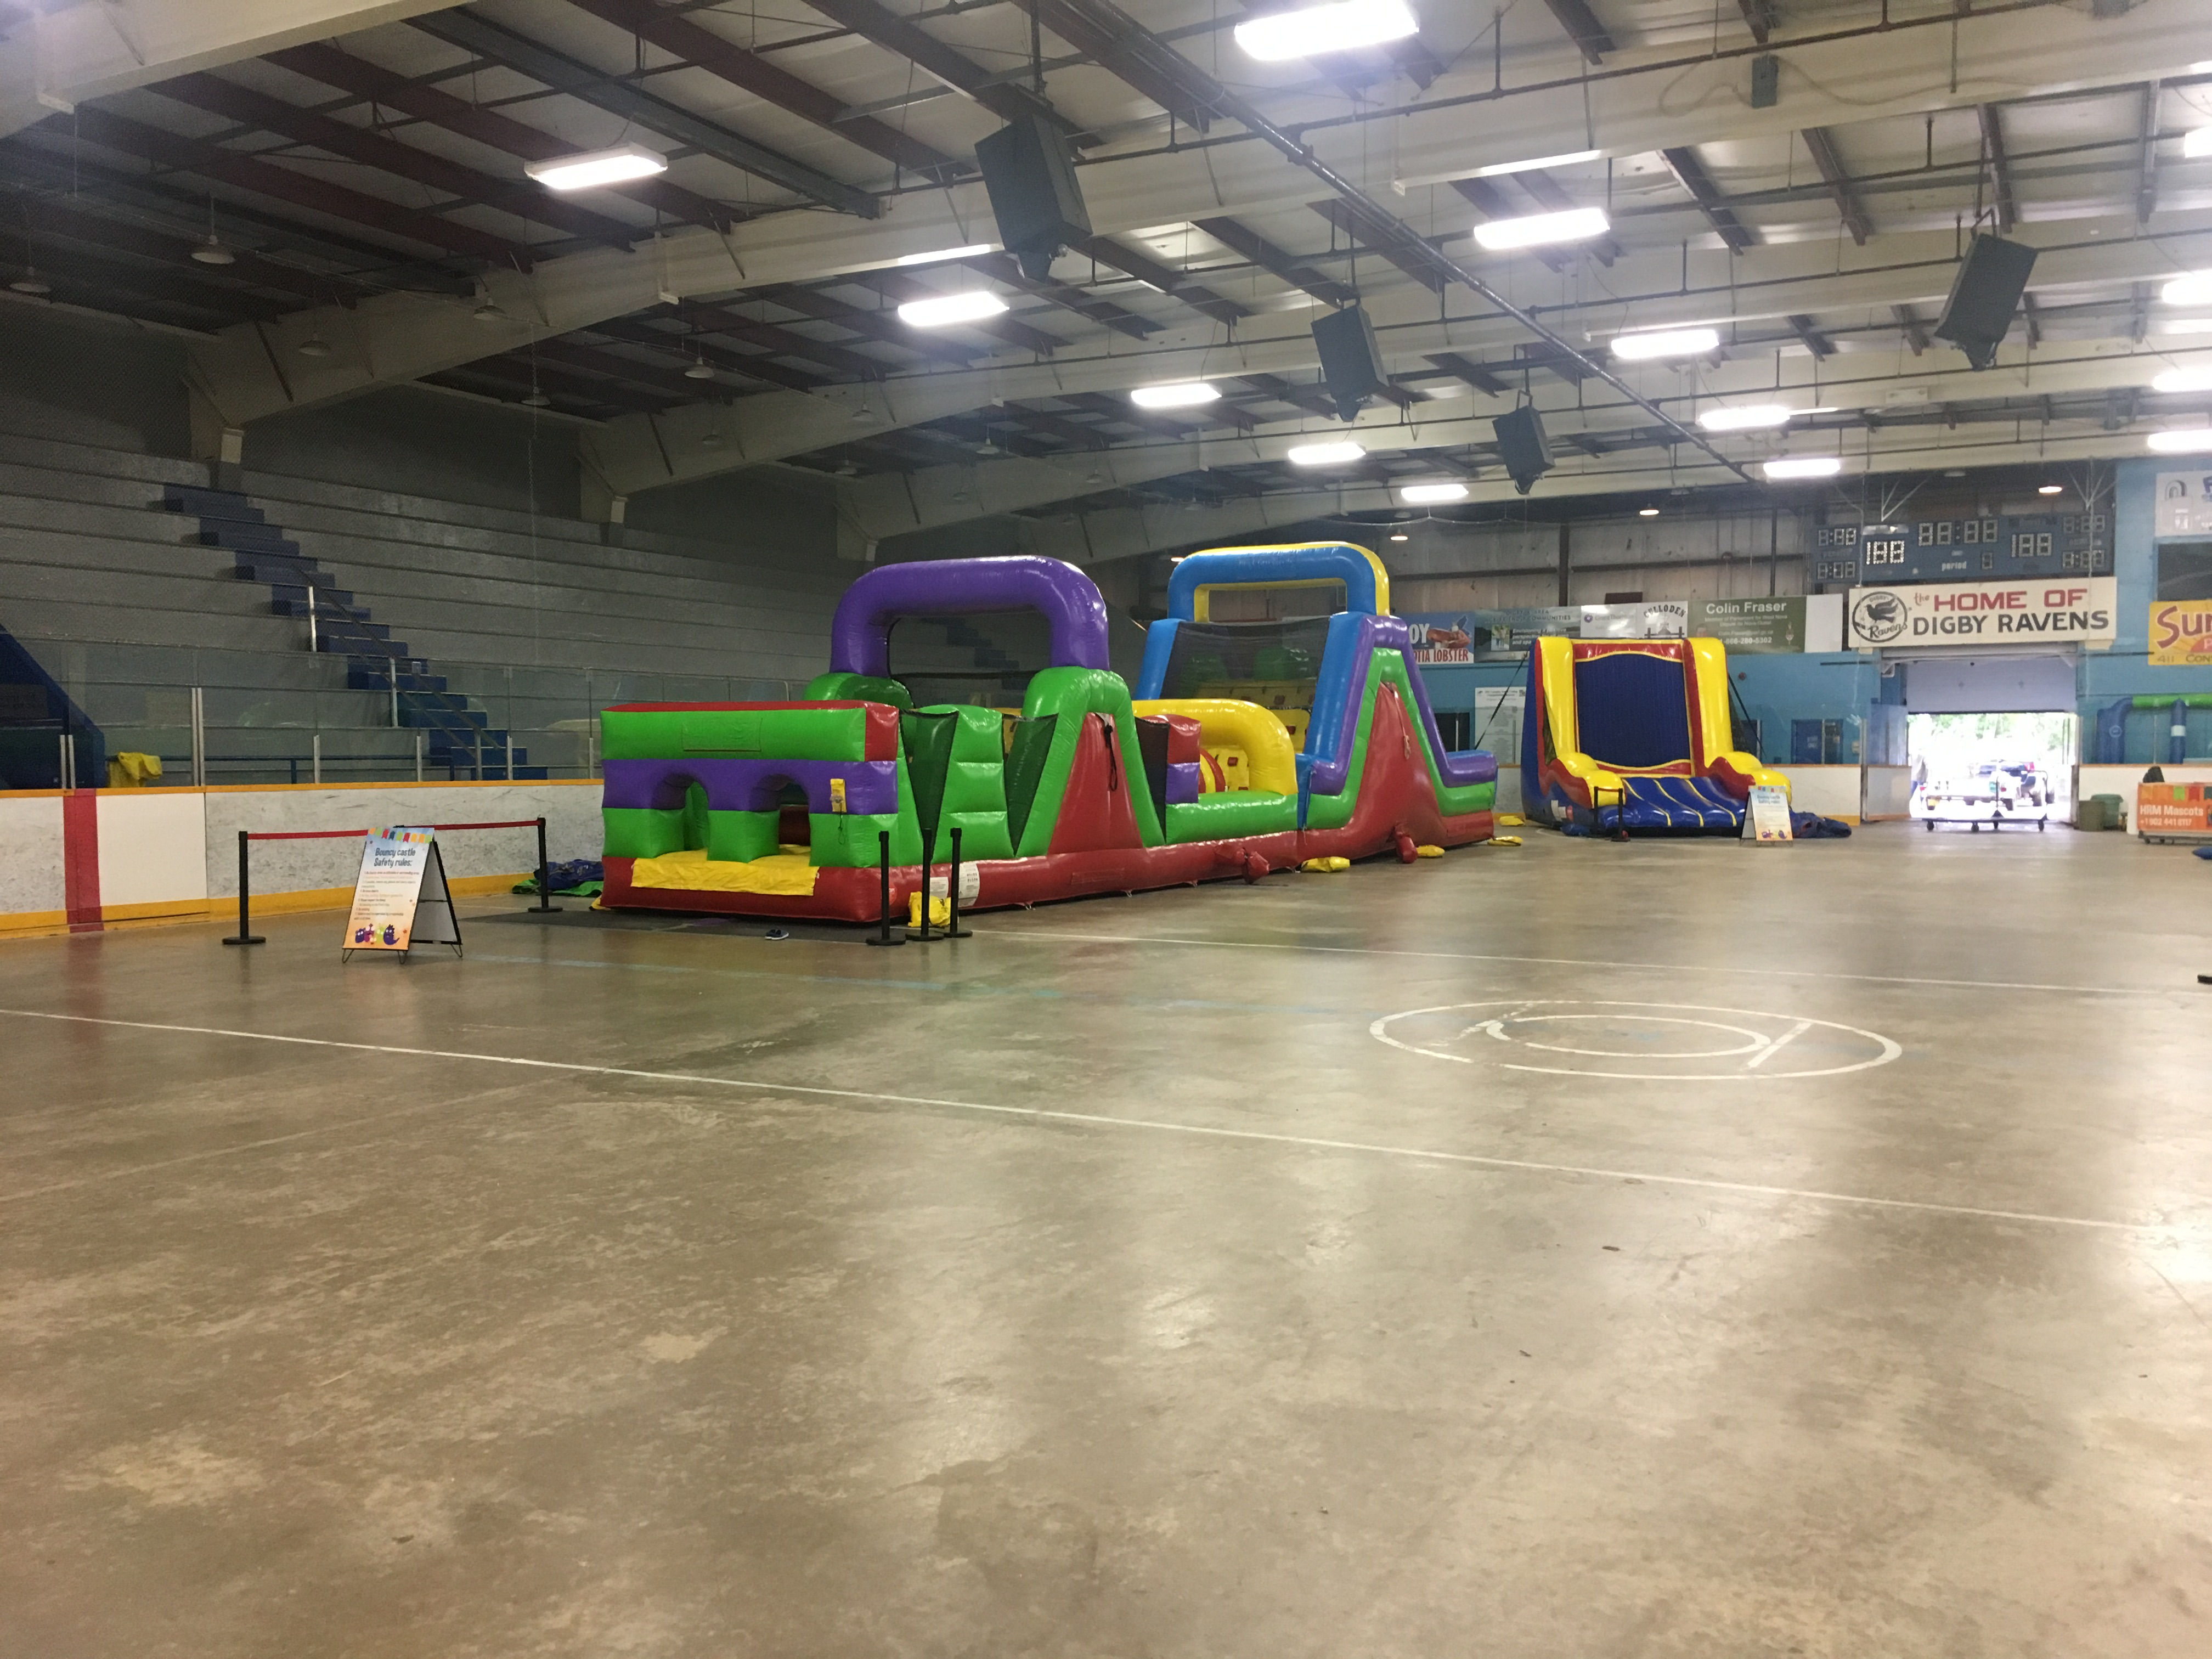 70 foot Obstacle course